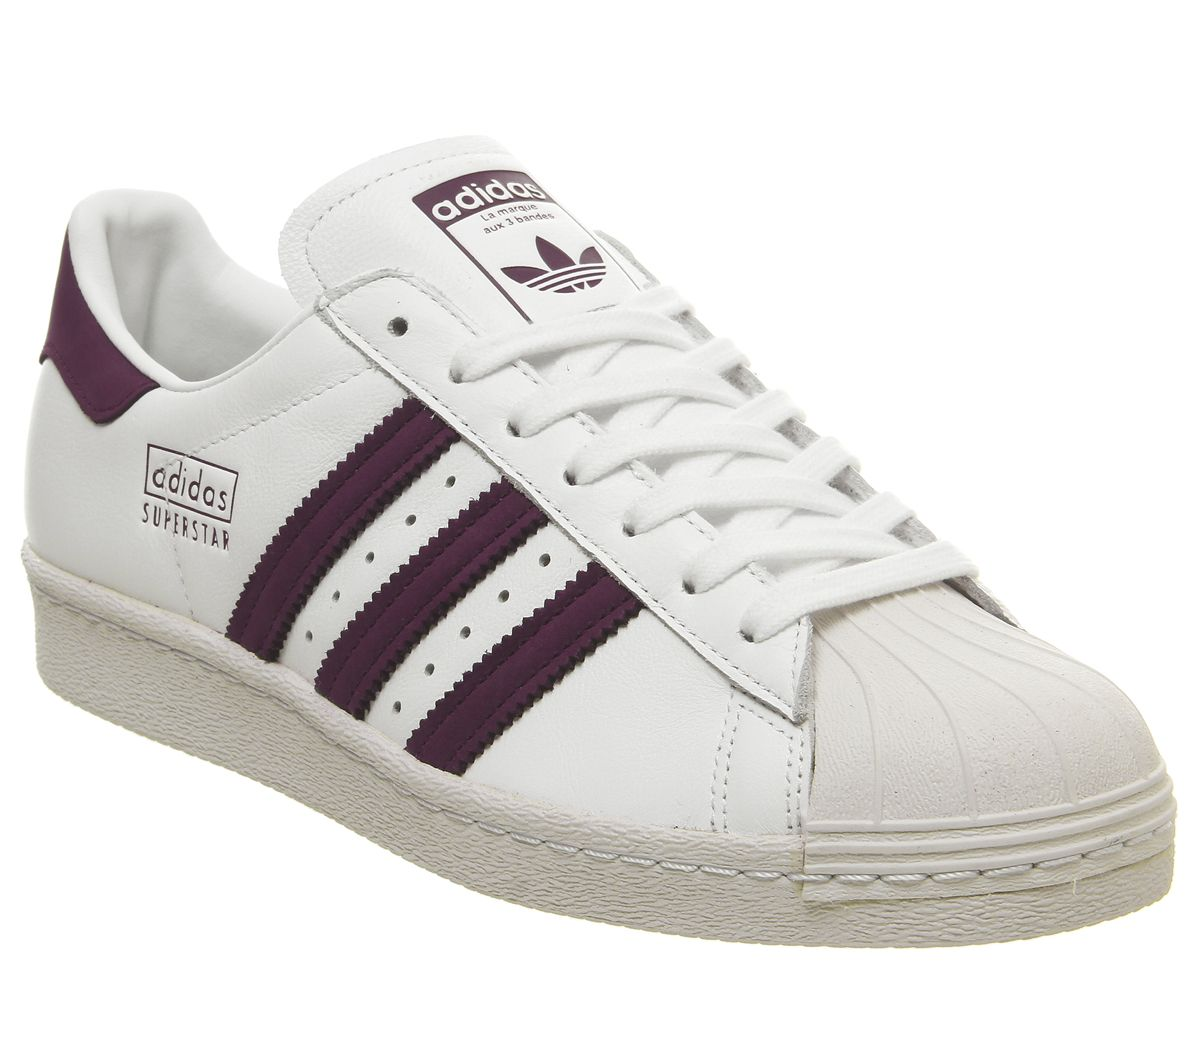 on sale 26164 698c5 adidas Superstar 80s Trainers White Maroon Crystal White - Unisex Sports